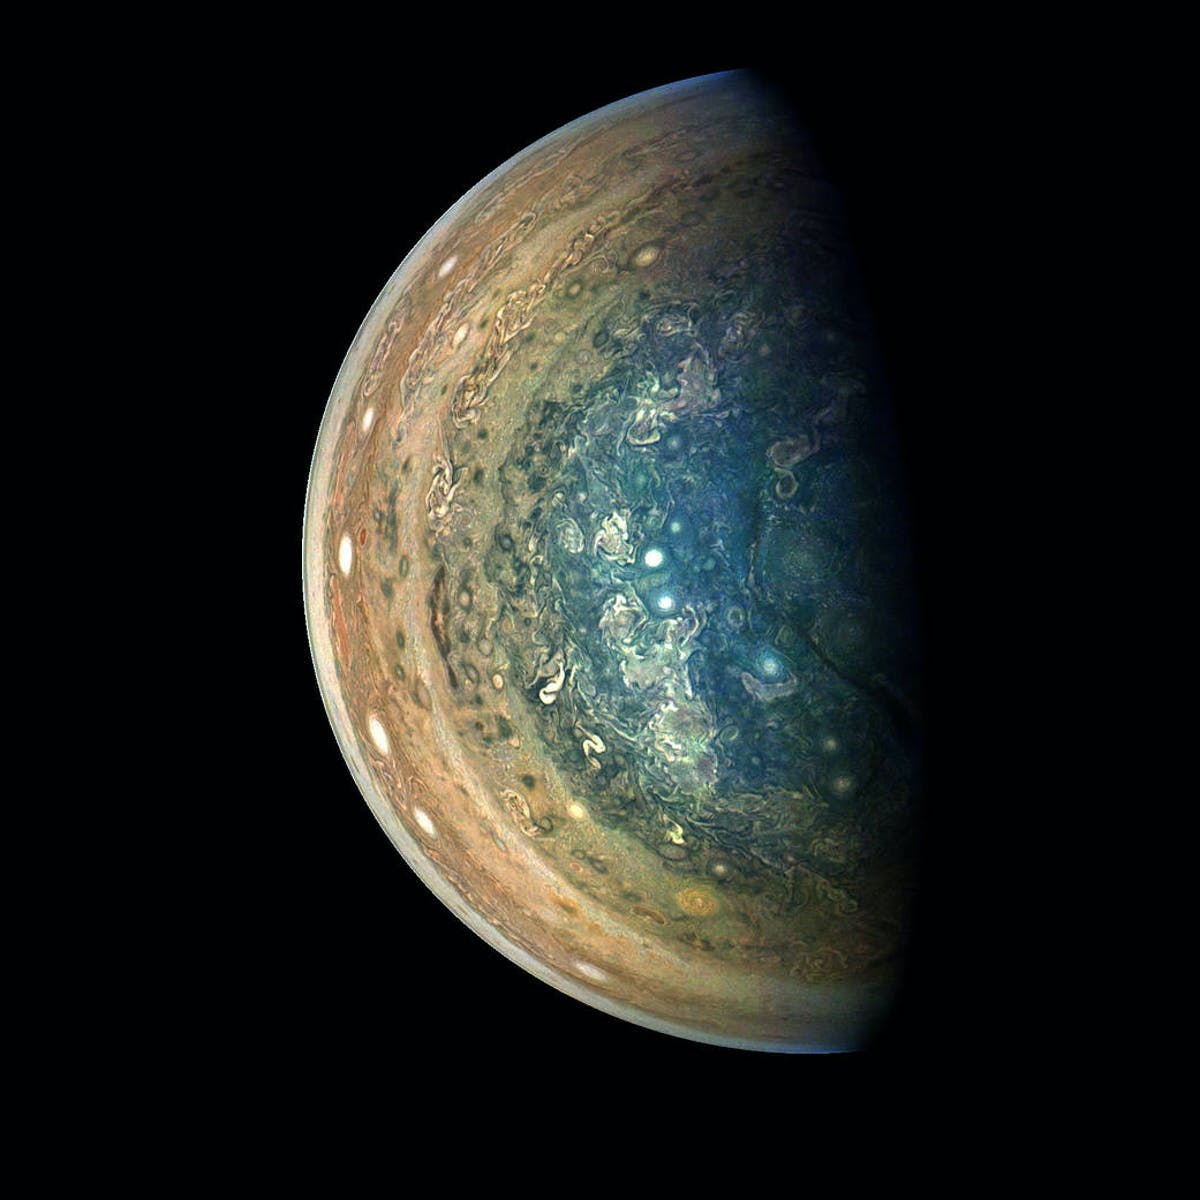 Jupiter's South Pole is Stunning in Newly Edited NASA Picture